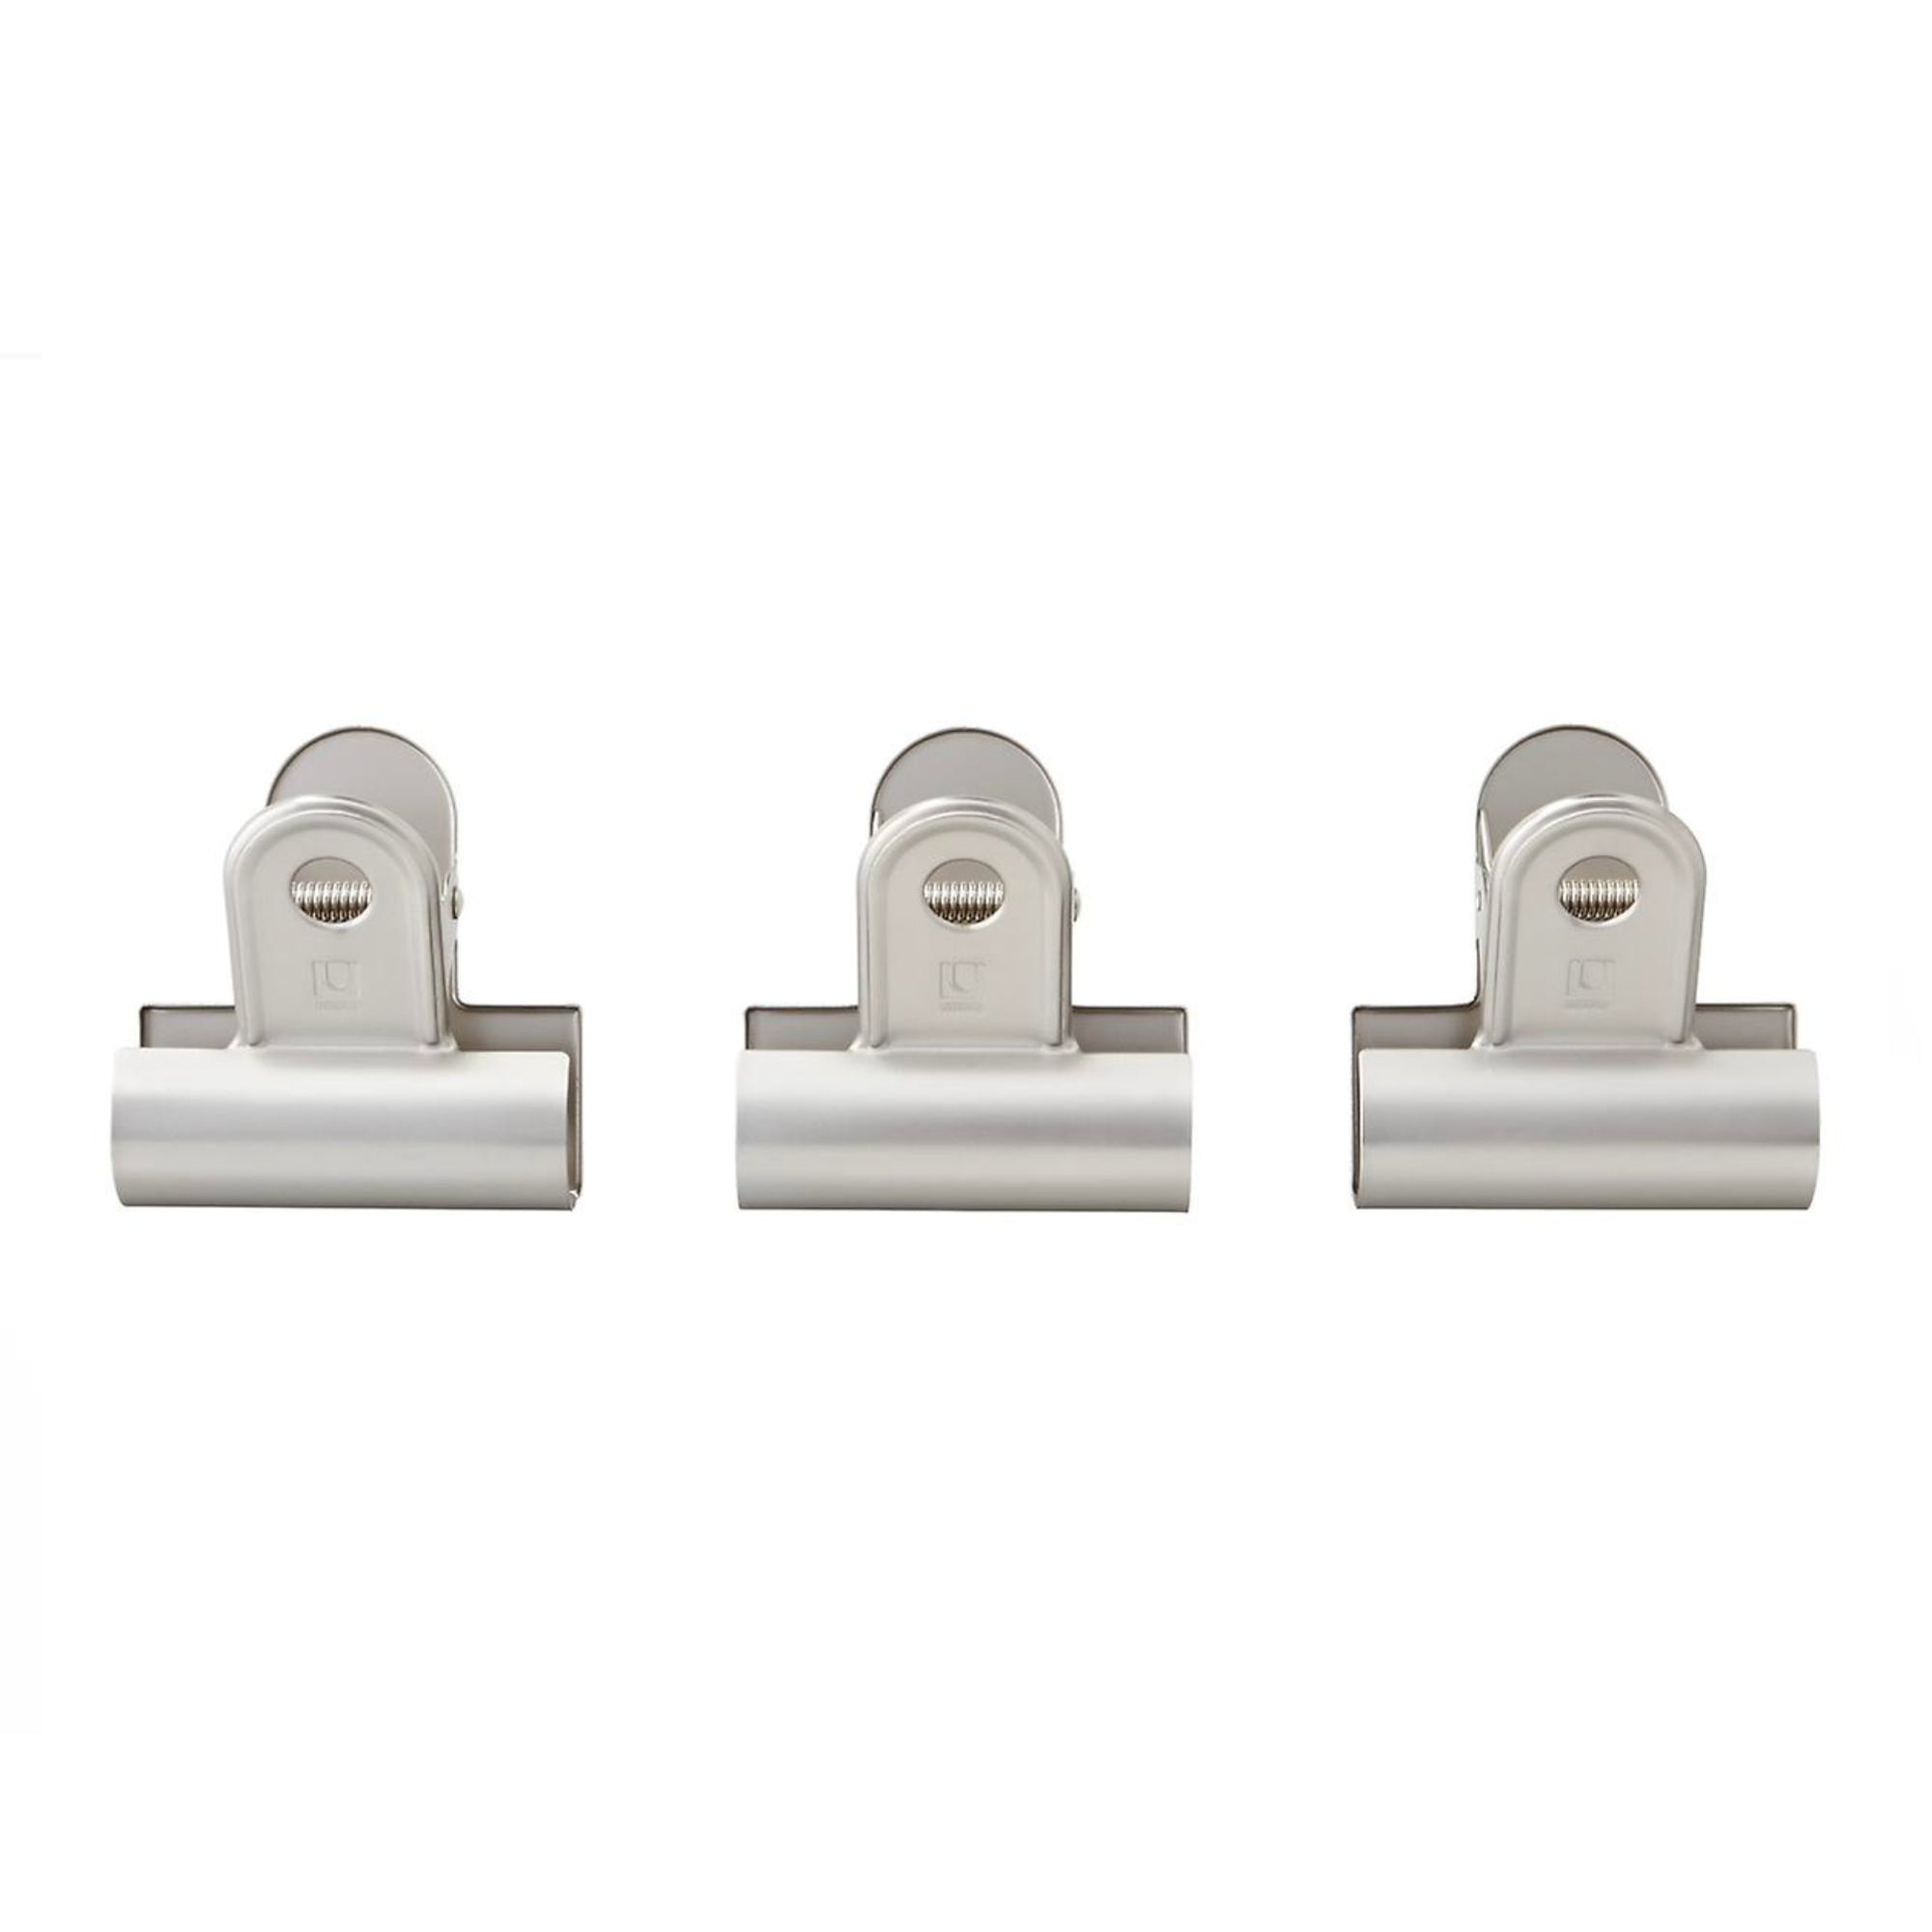 Umbra Clipper clip hooks, nickel